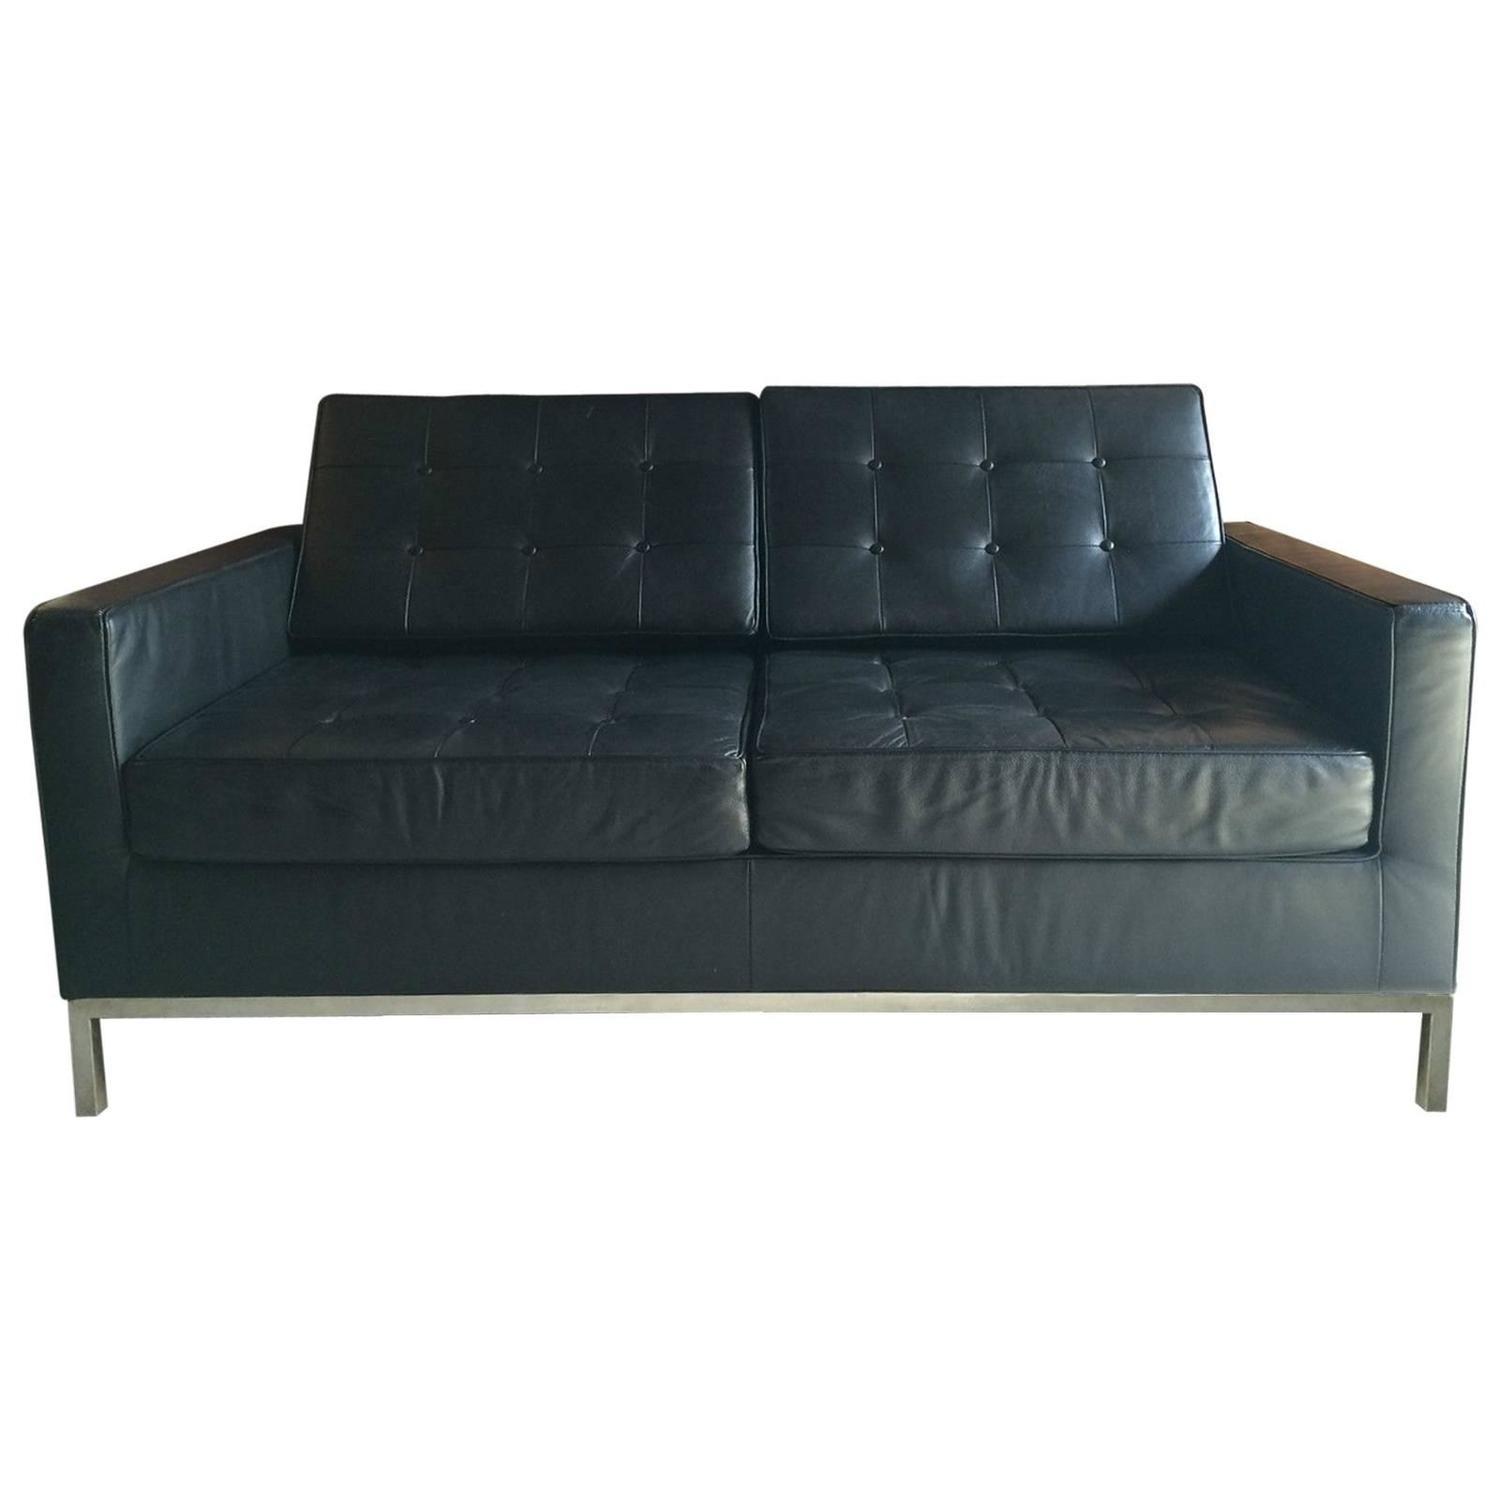 Florence knoll style two seat sofa settee black leather at 1stdibs - Florence knoll sofa gebraucht ...